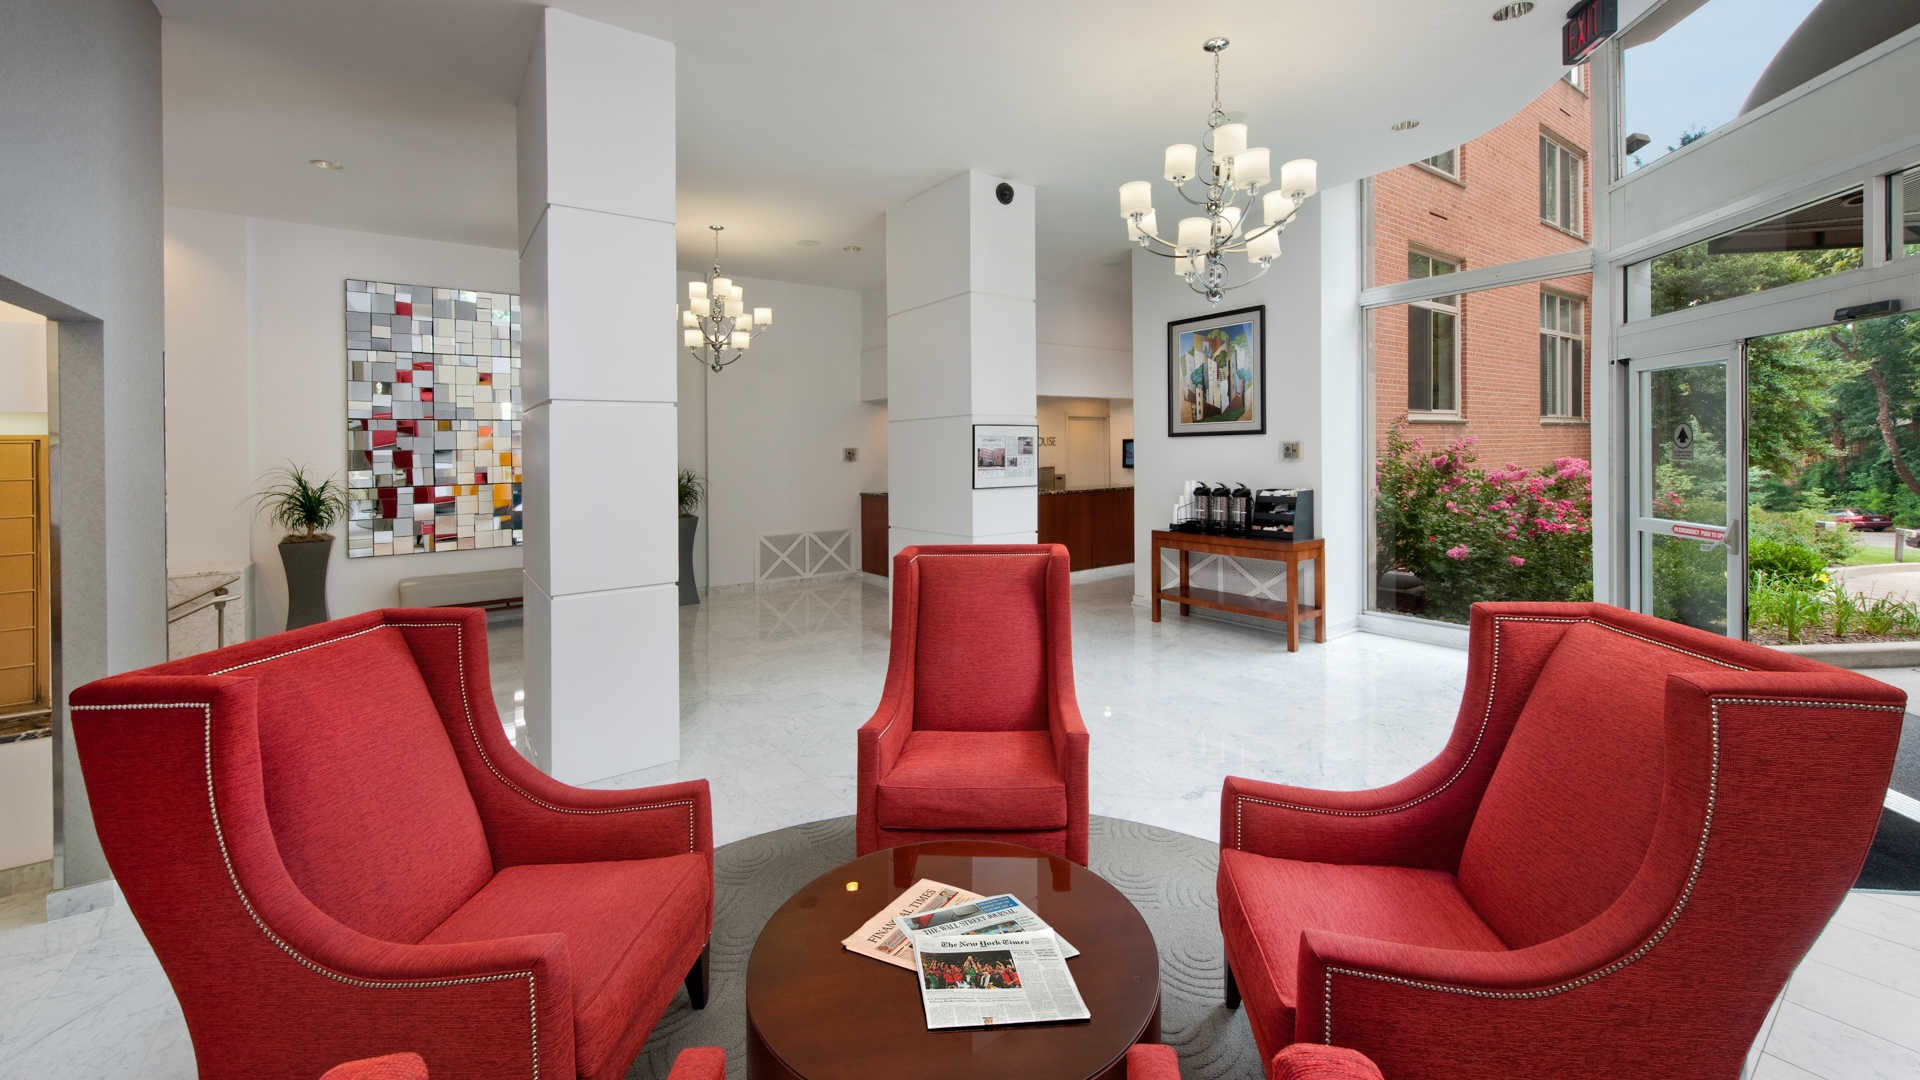 4 104 apartments for rent in washington dc zumper